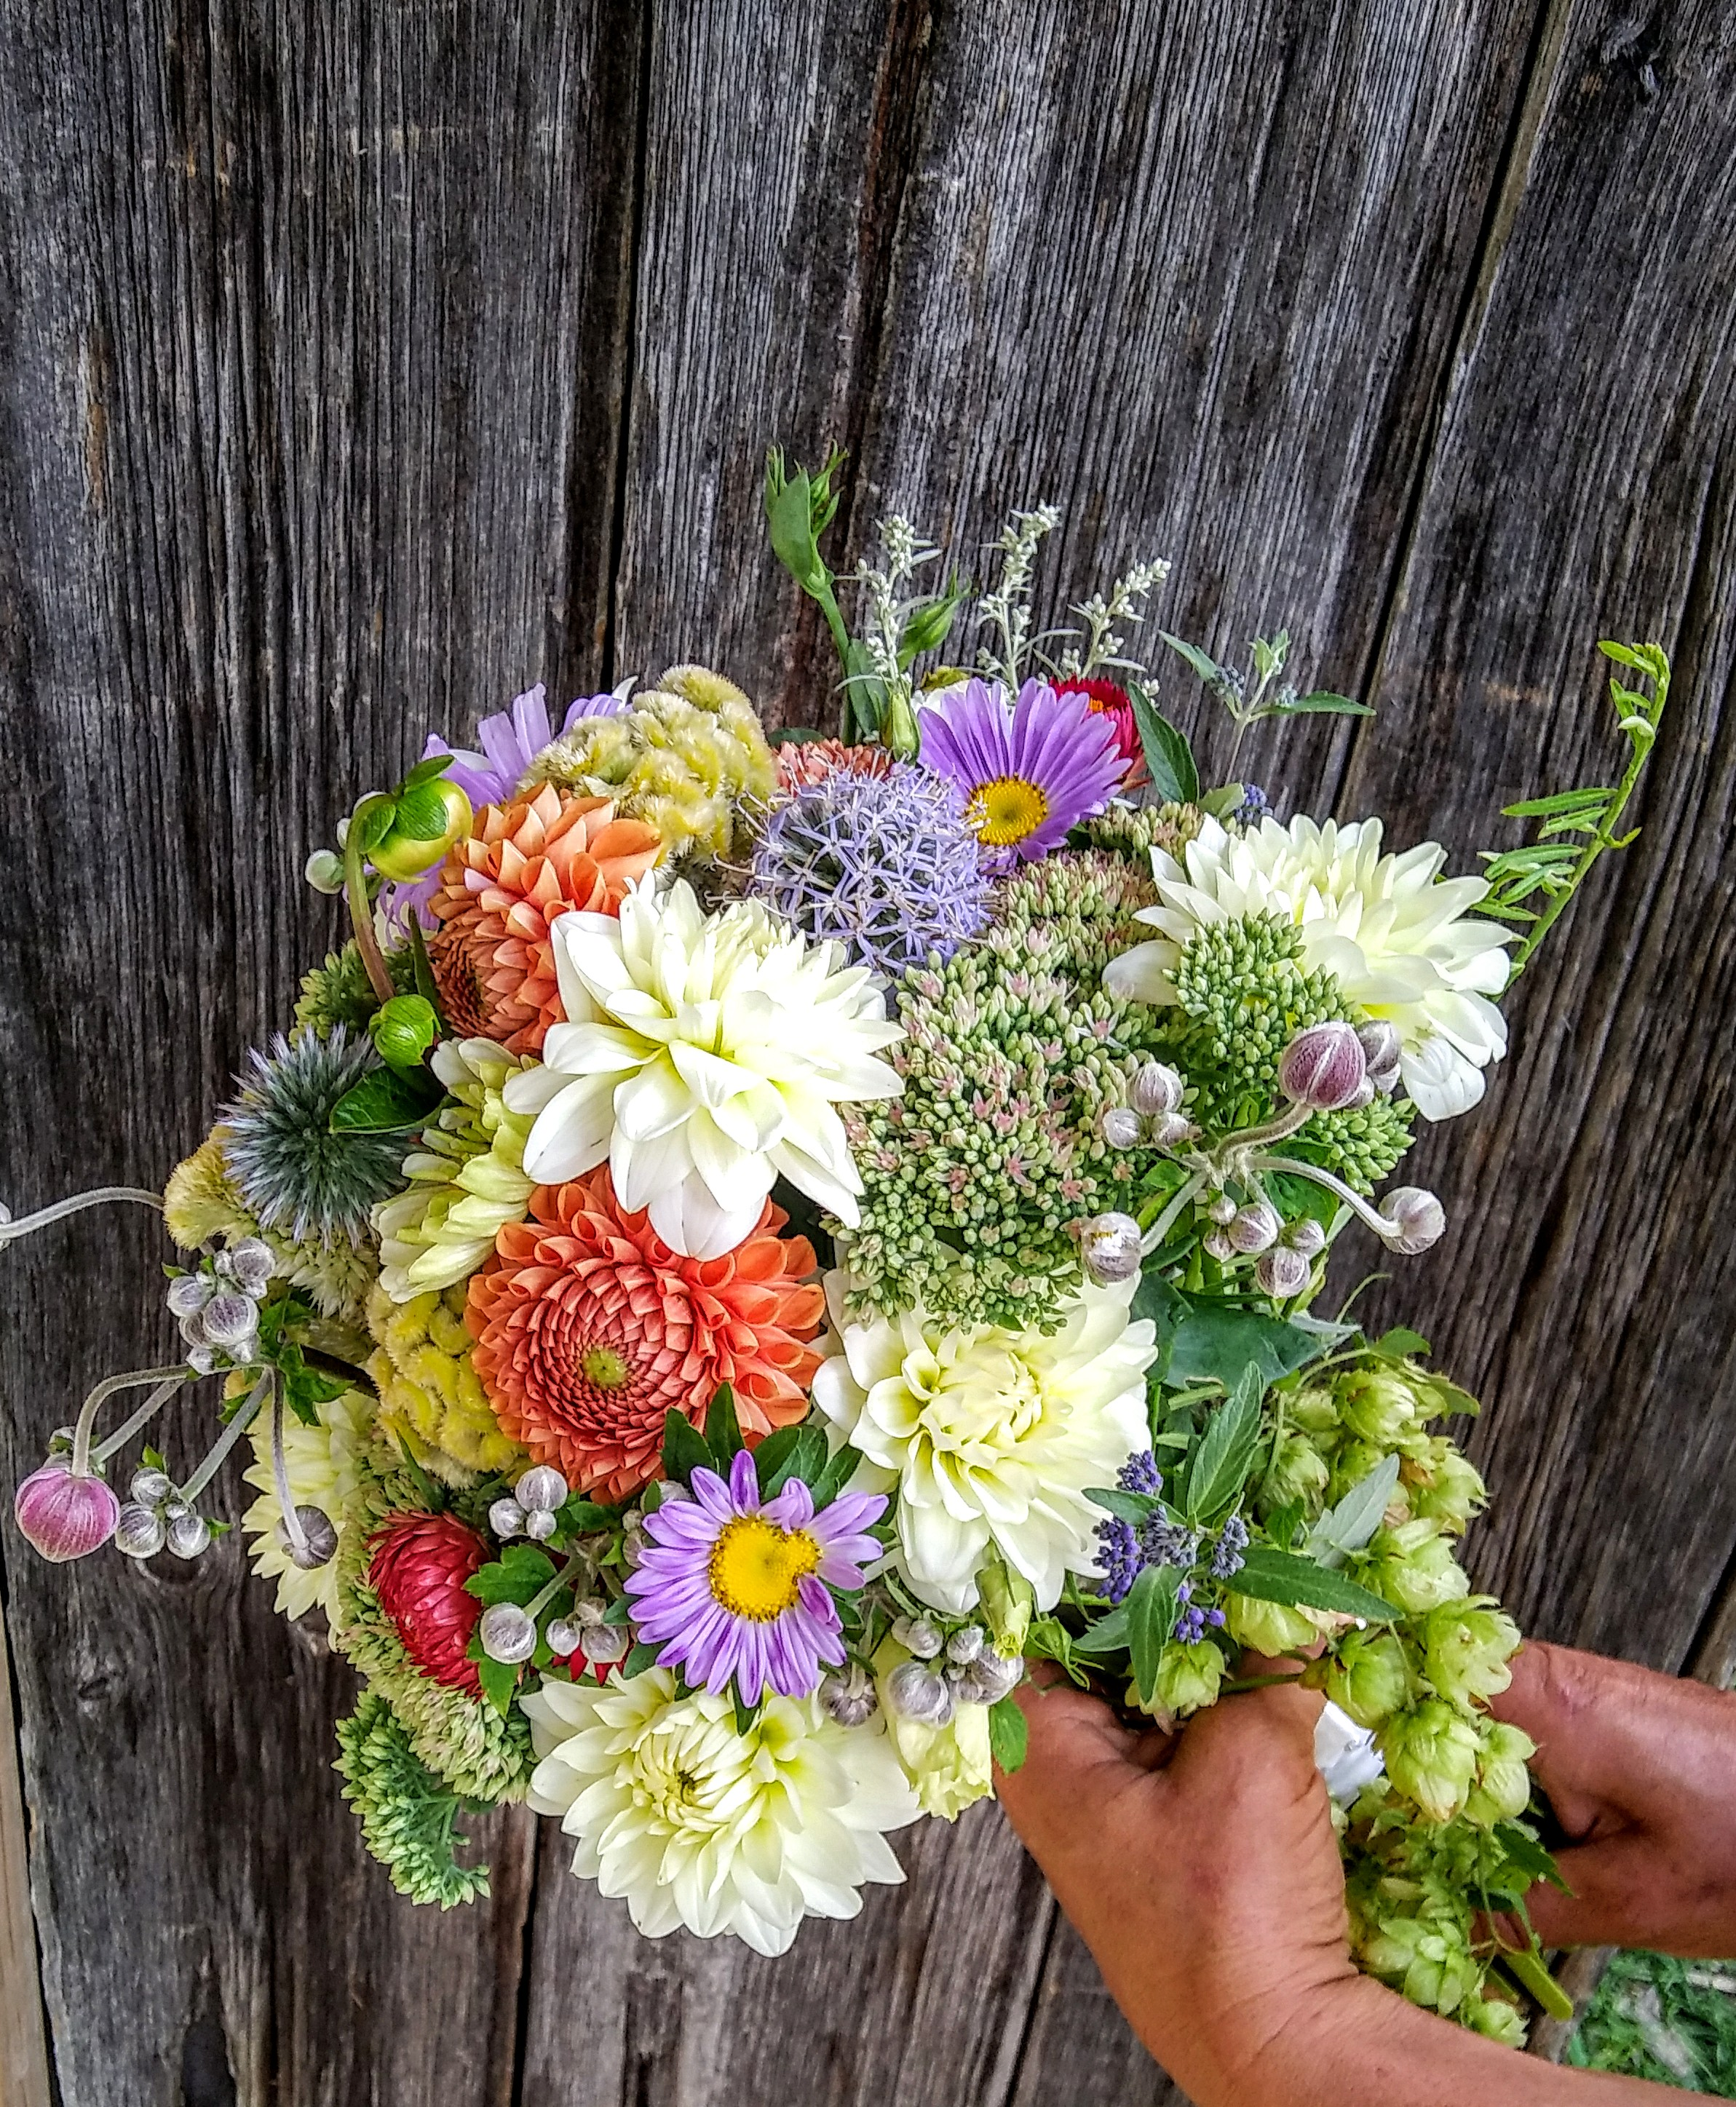 Bridal Bouquet Laura 9 - 2- 18.jpg